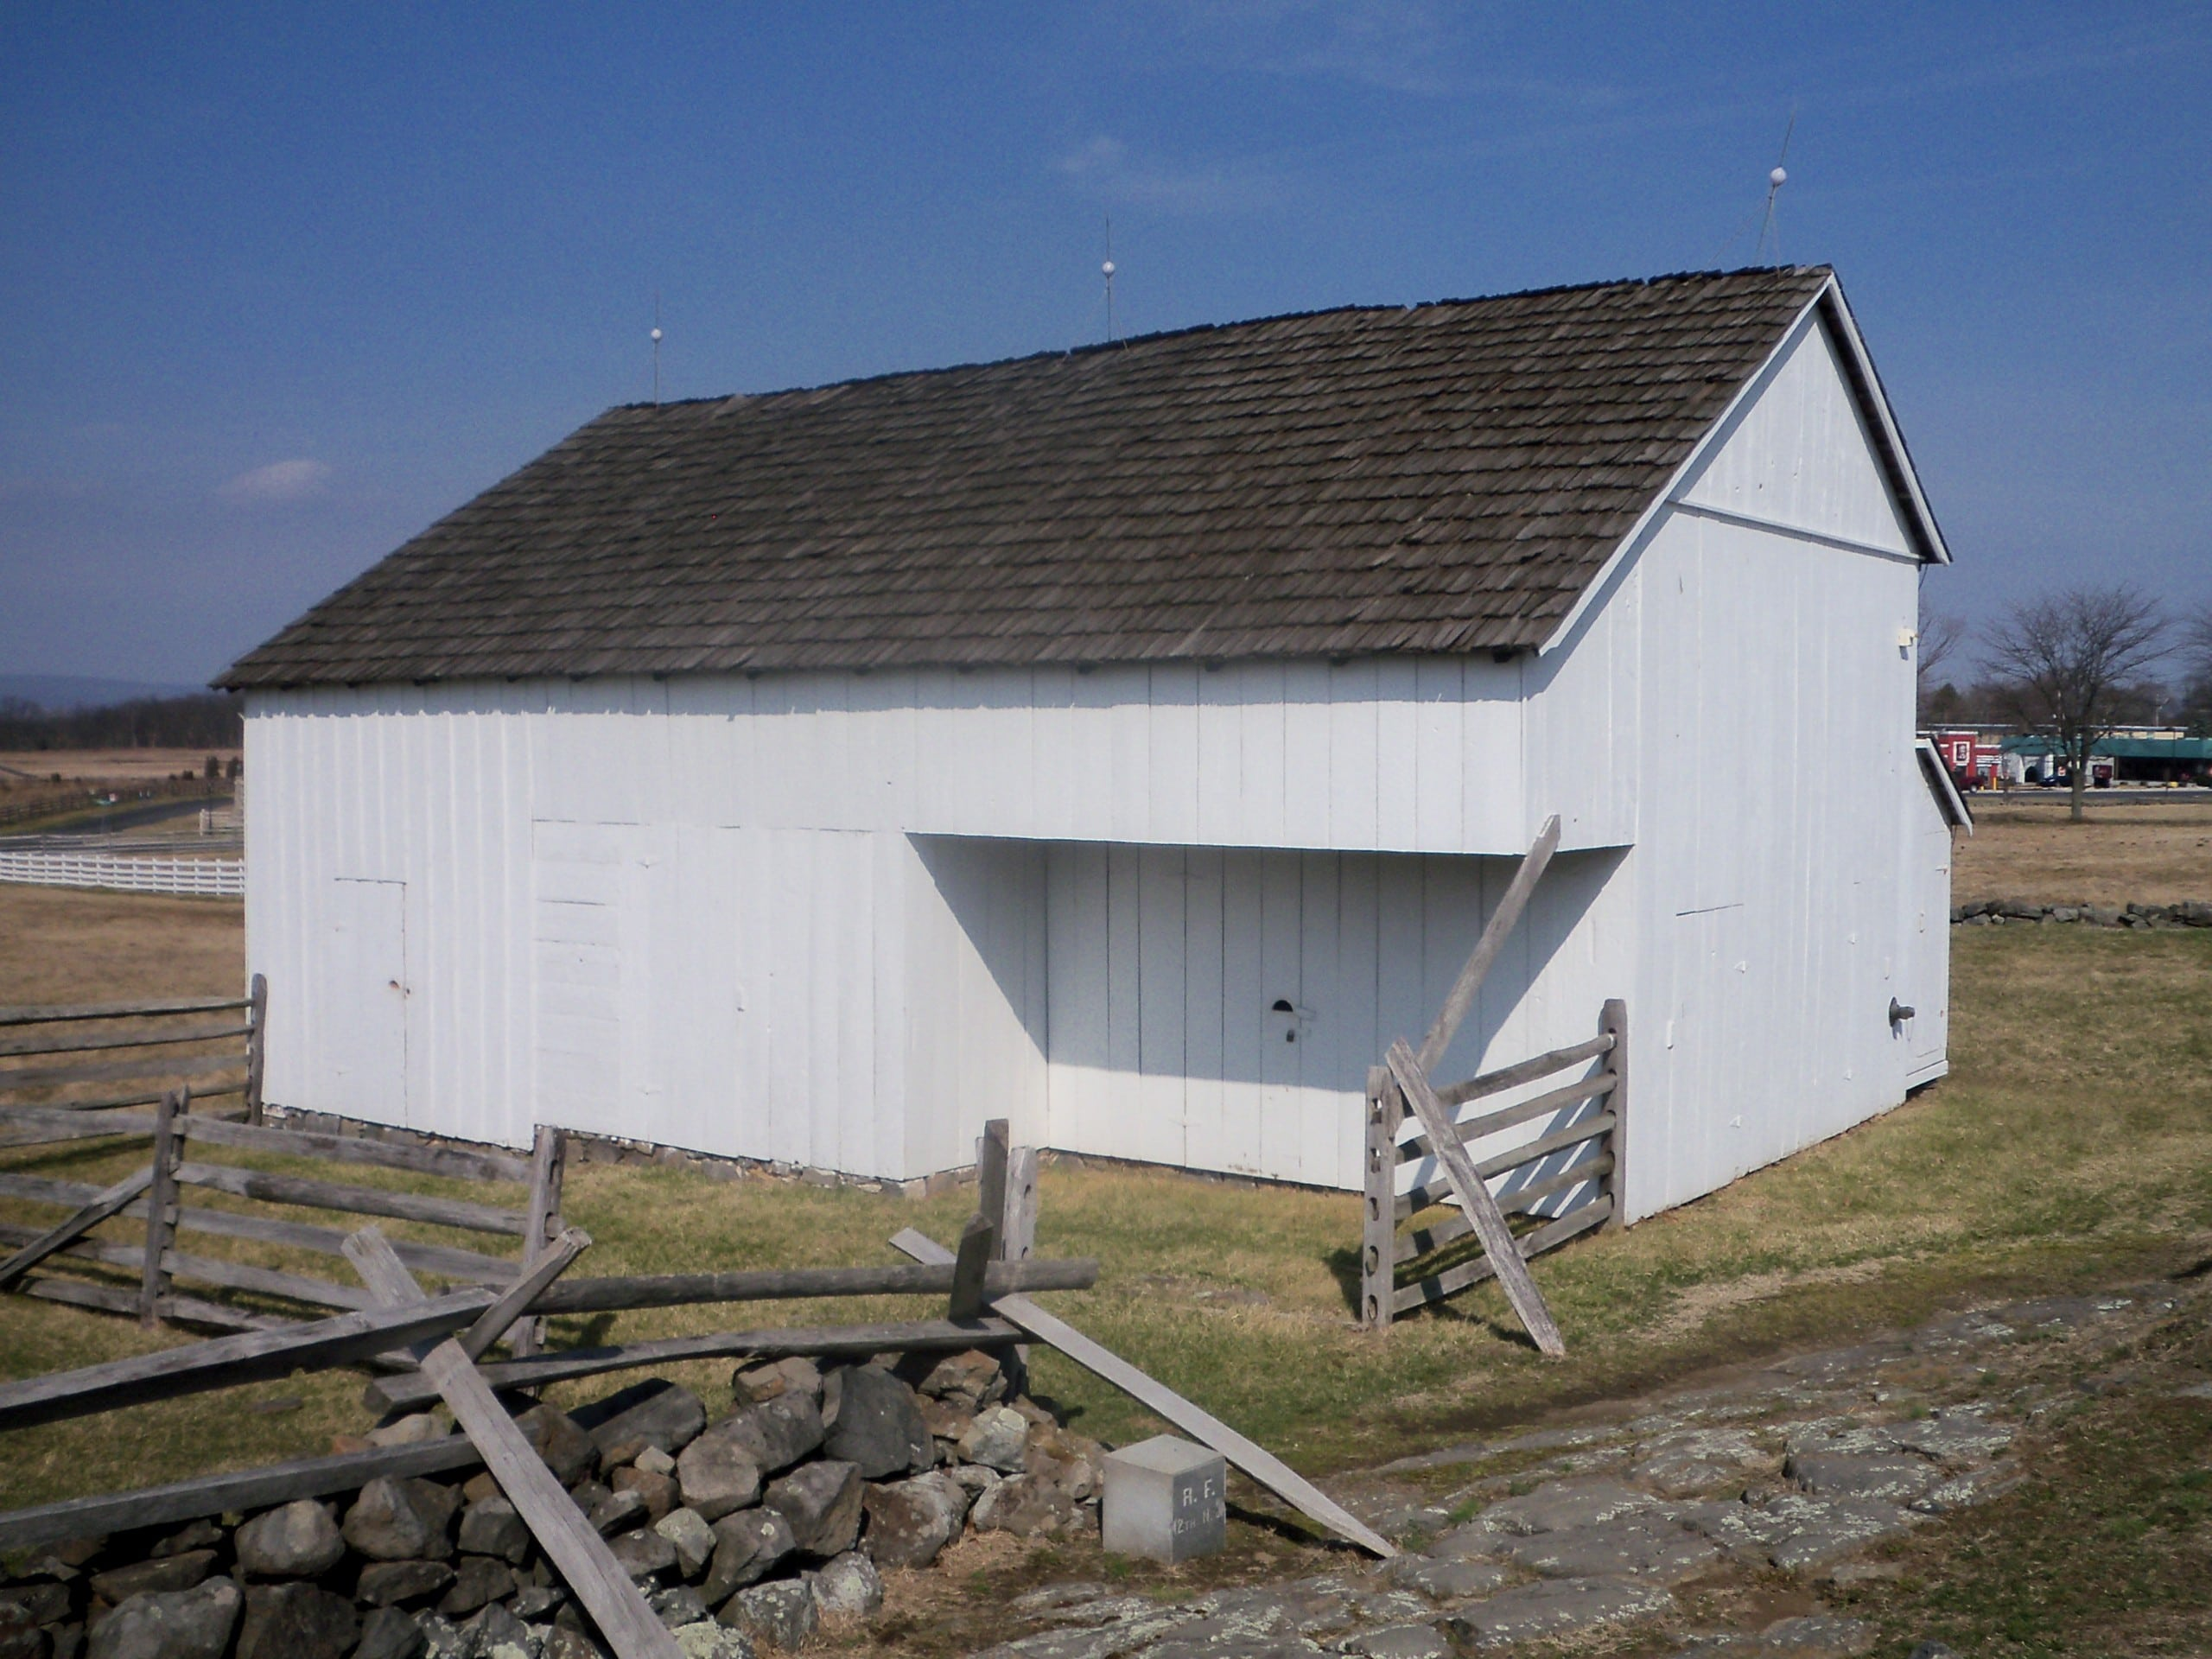 The Abraham Brian Barn